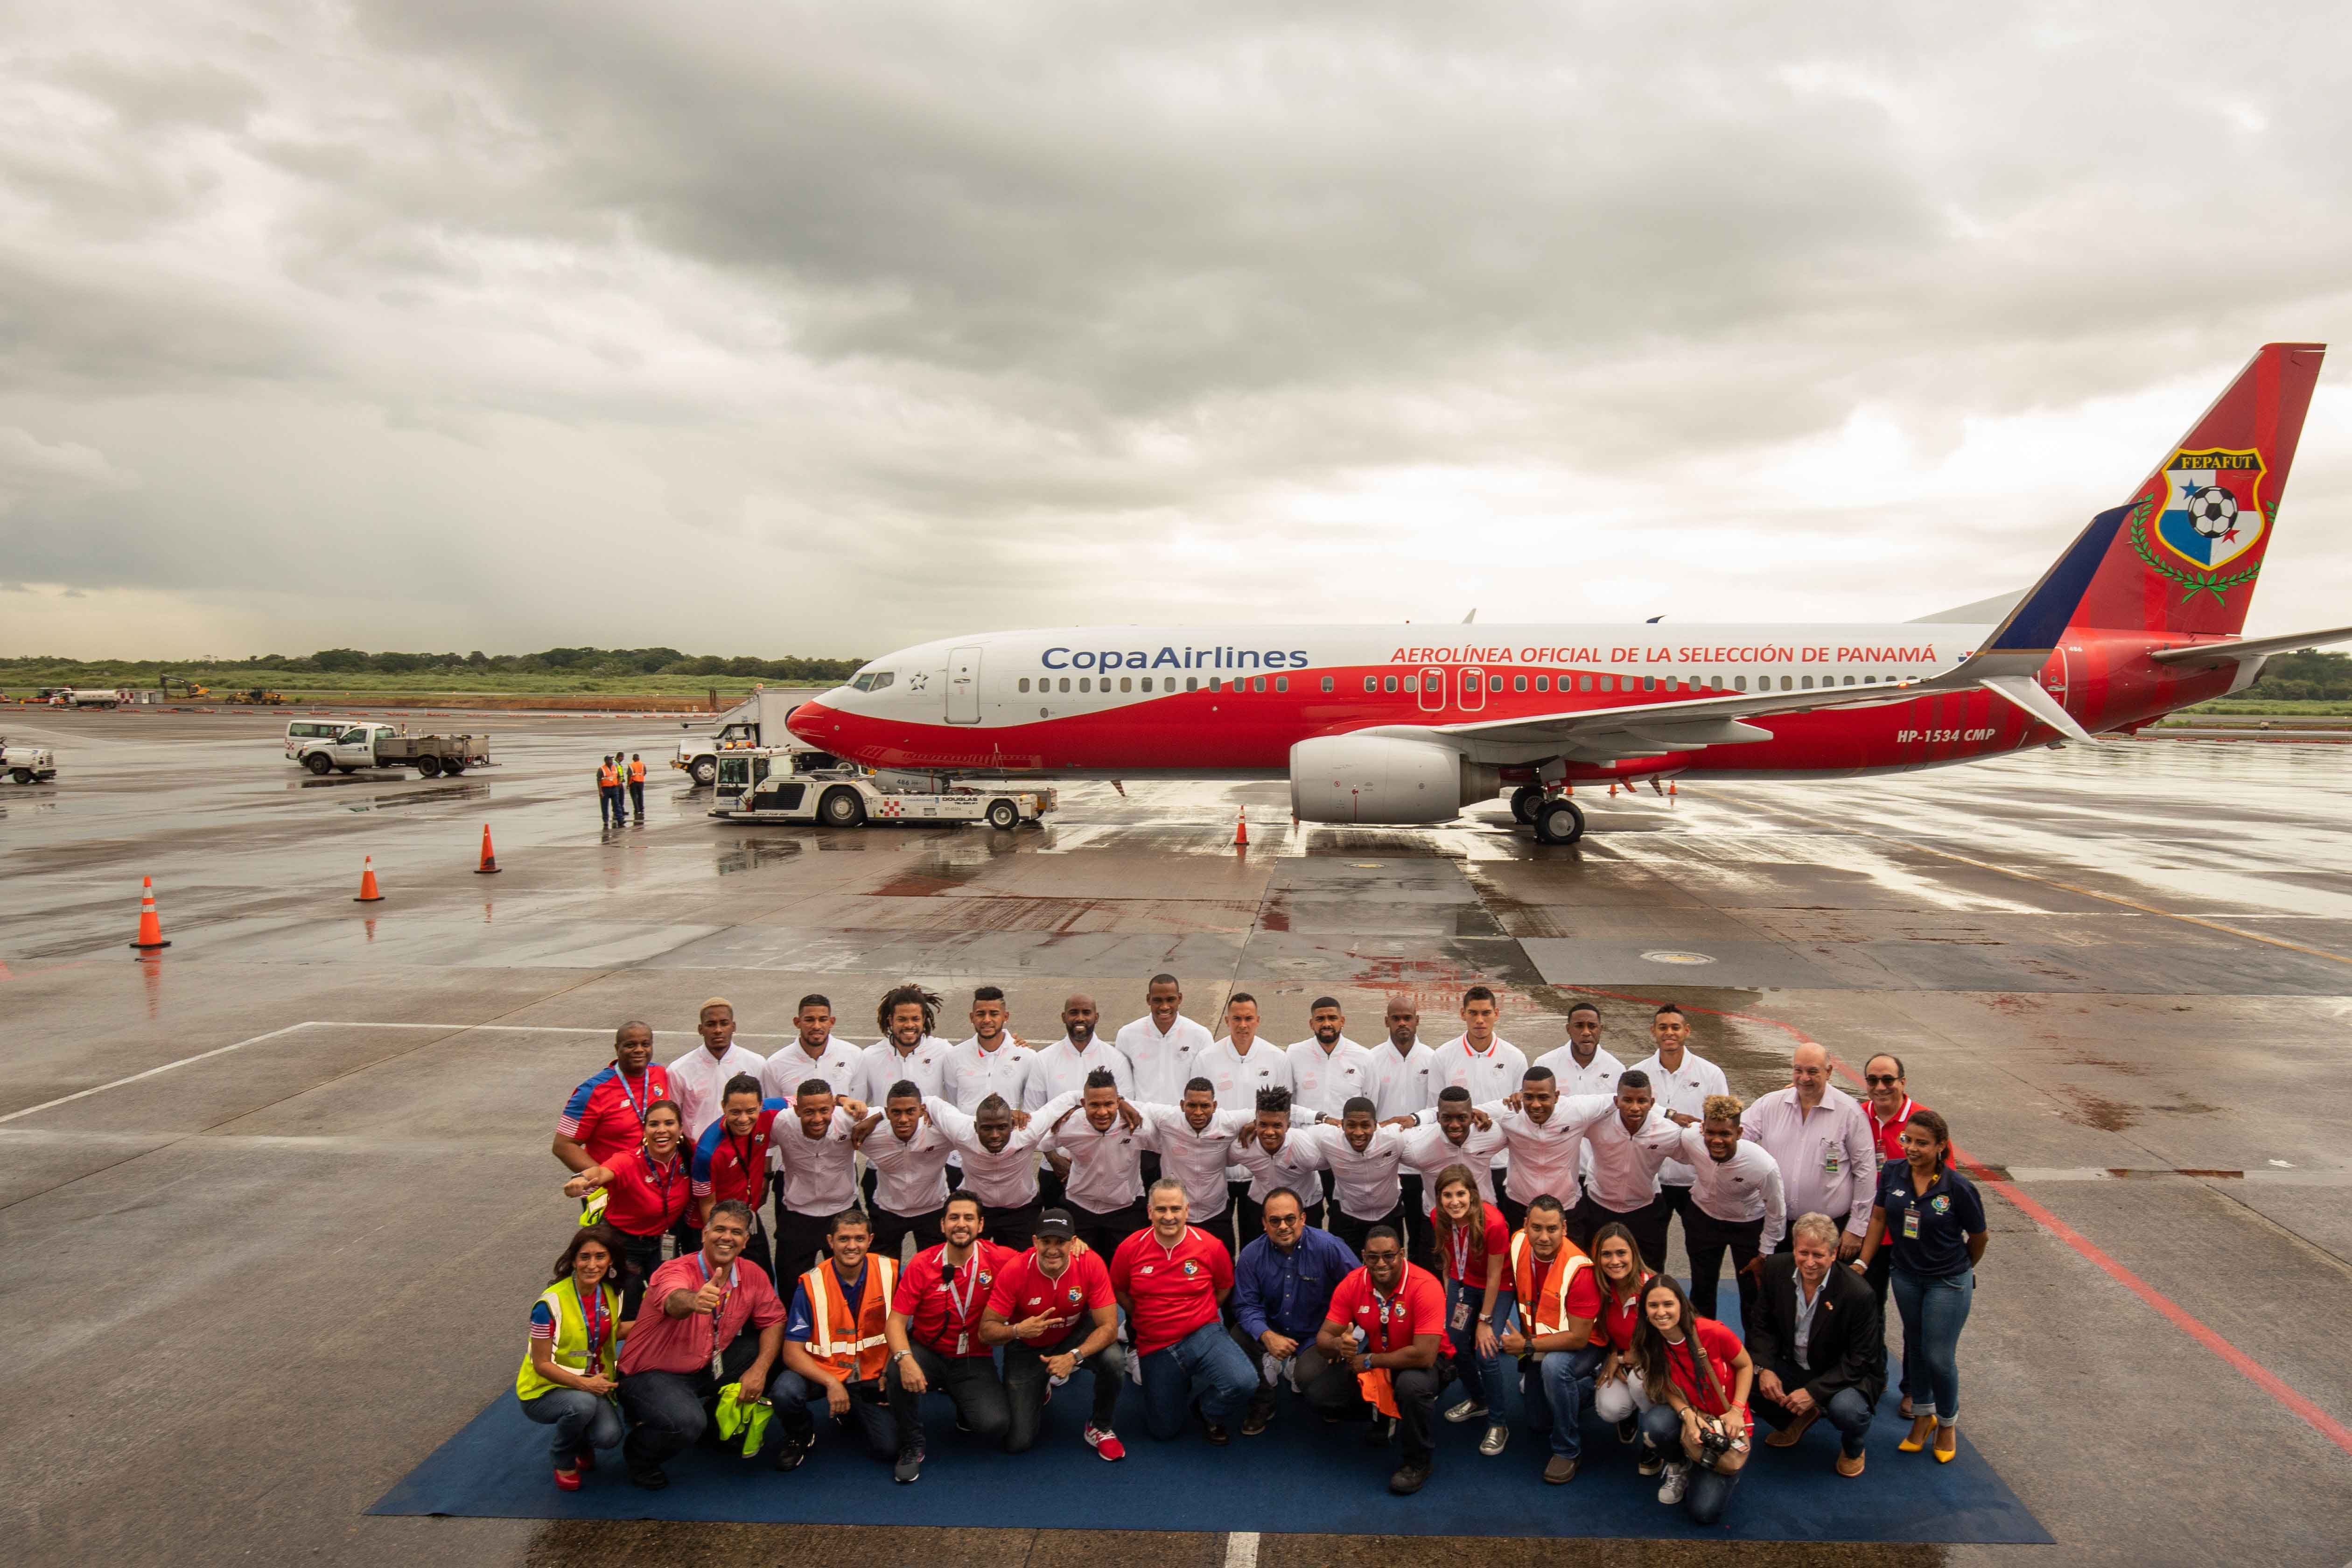 Panama's national soccer team farewell with from Copa Airlines members, National soccer team airplane on the background